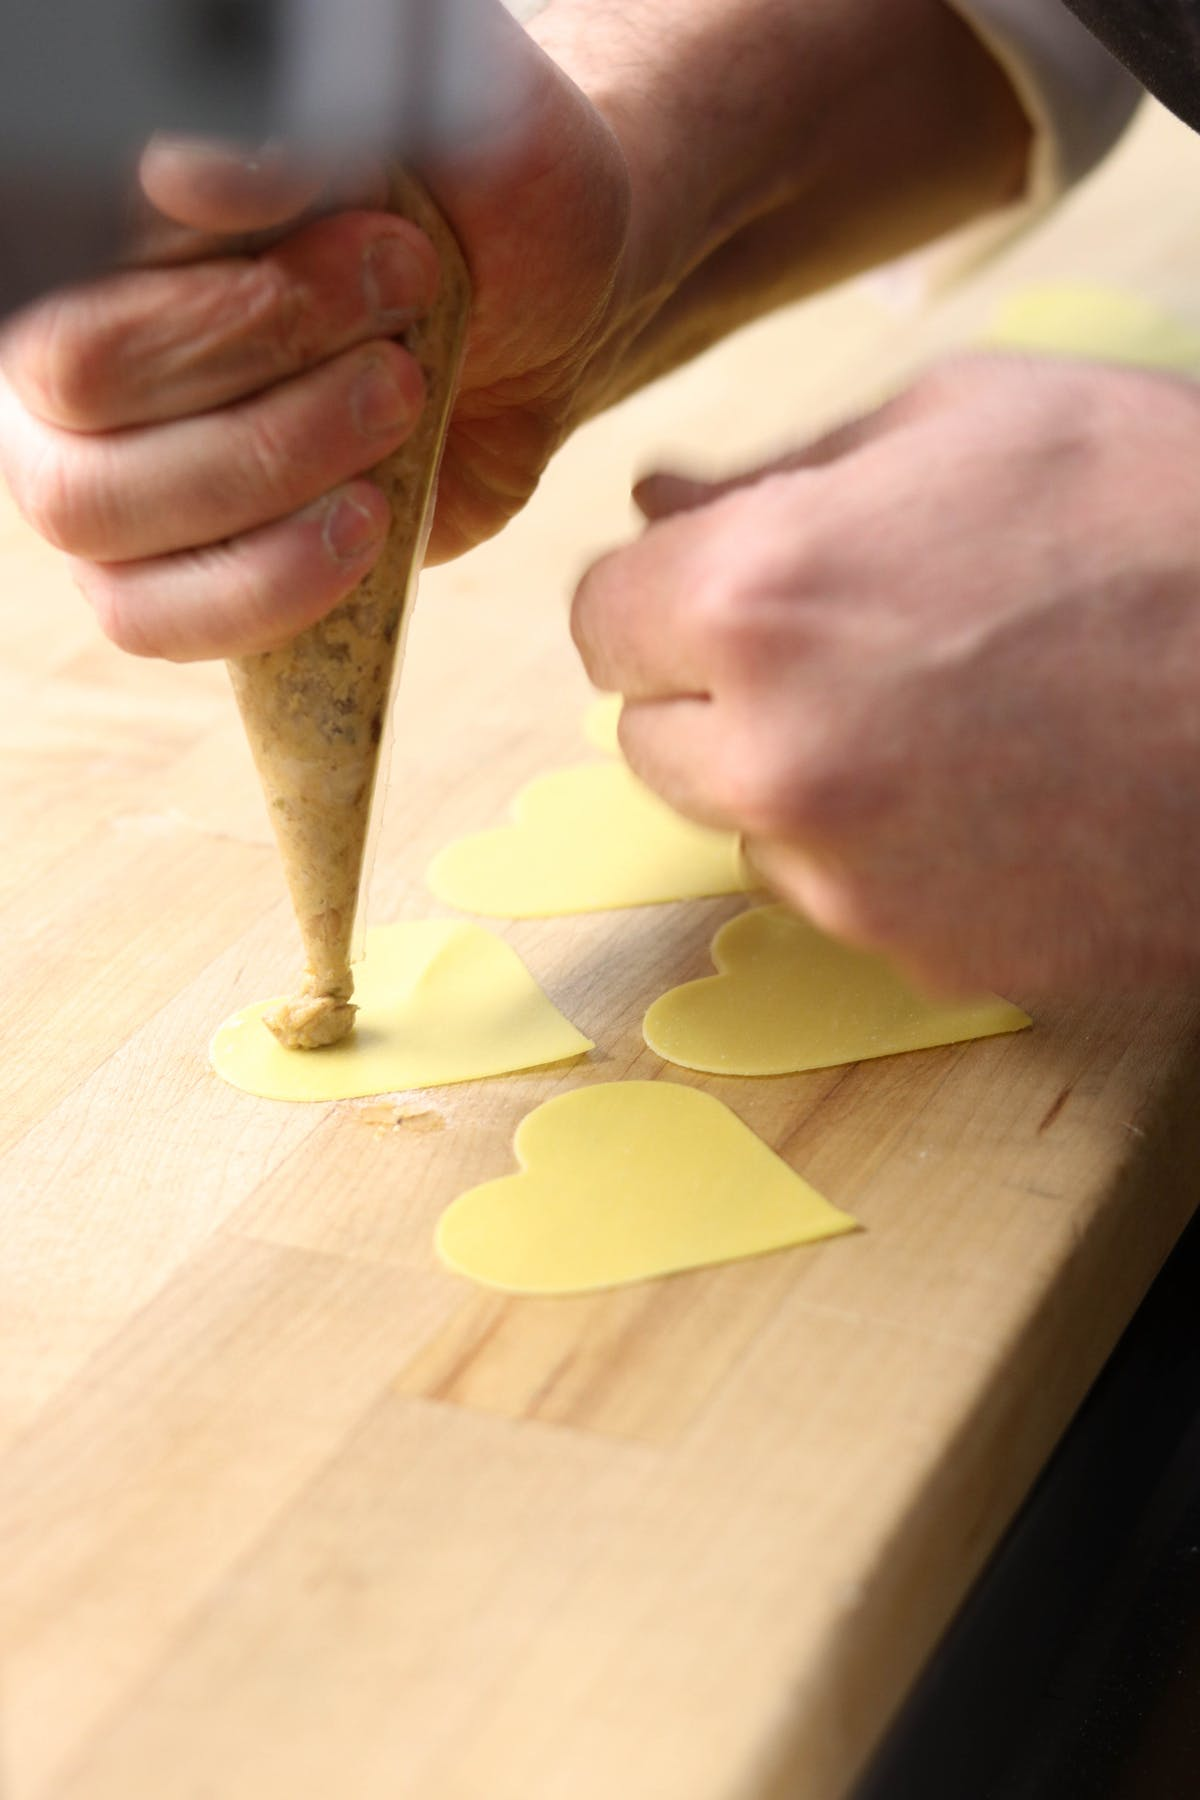 a person sitting on a wooden cutting board